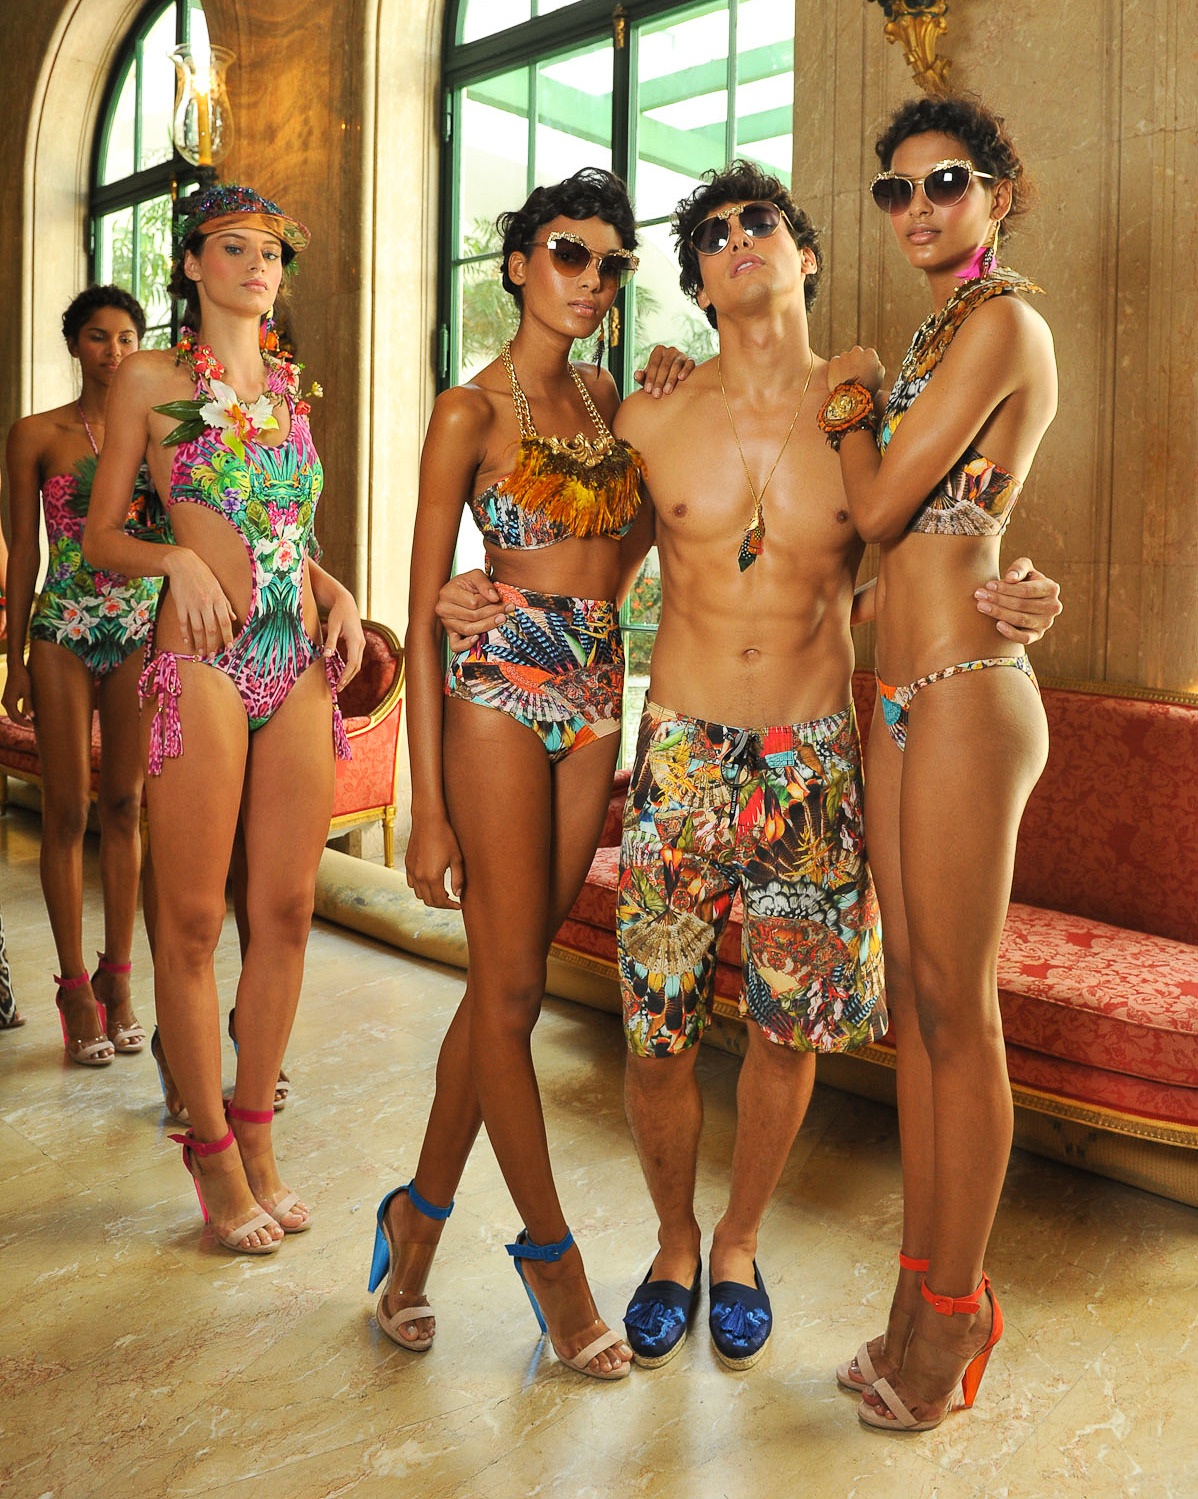 Backstage at Blue Man S/S 2014 for Rio de Janeiro Fashion Week